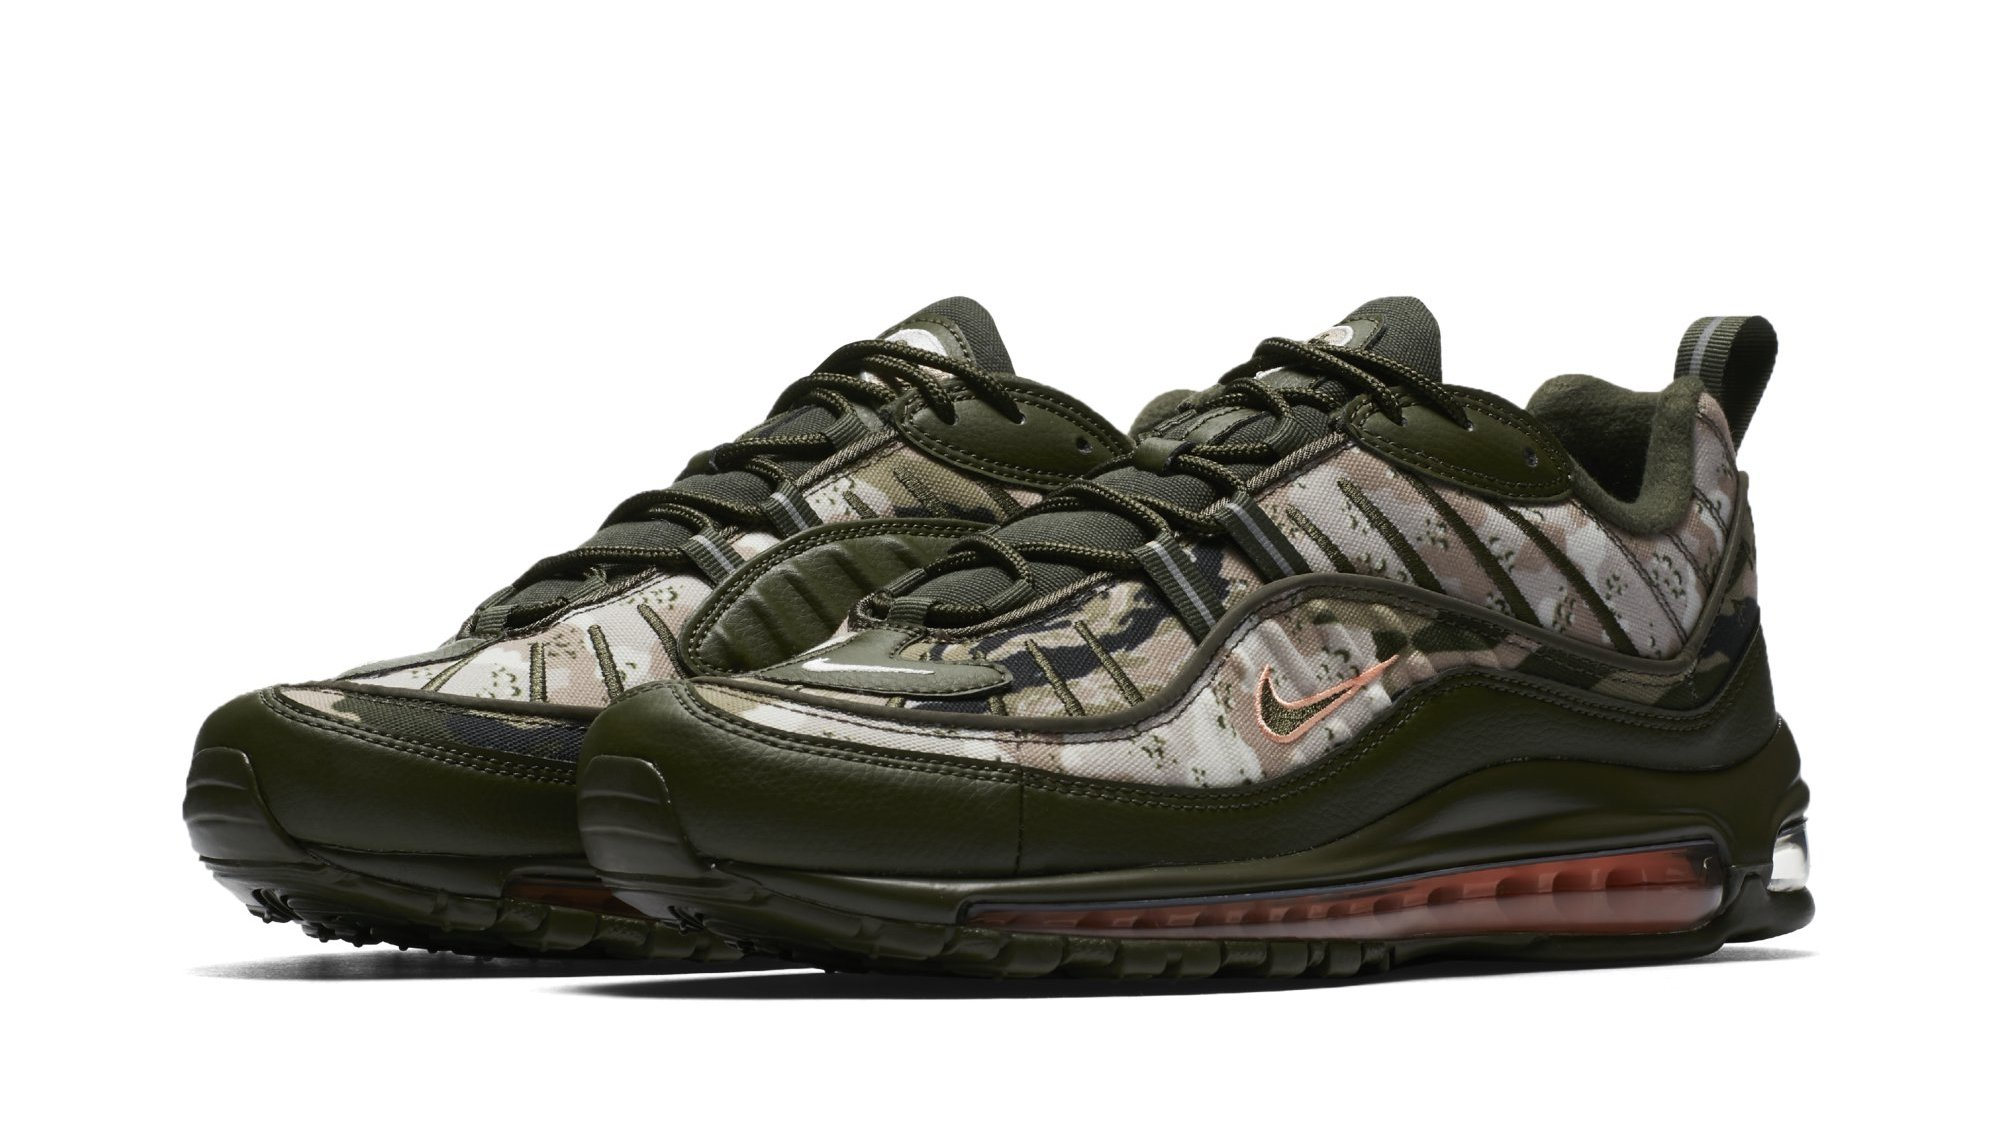 uk availability 46603 7c7fb Camo-Covered Air Max 98s Drop This Weekend